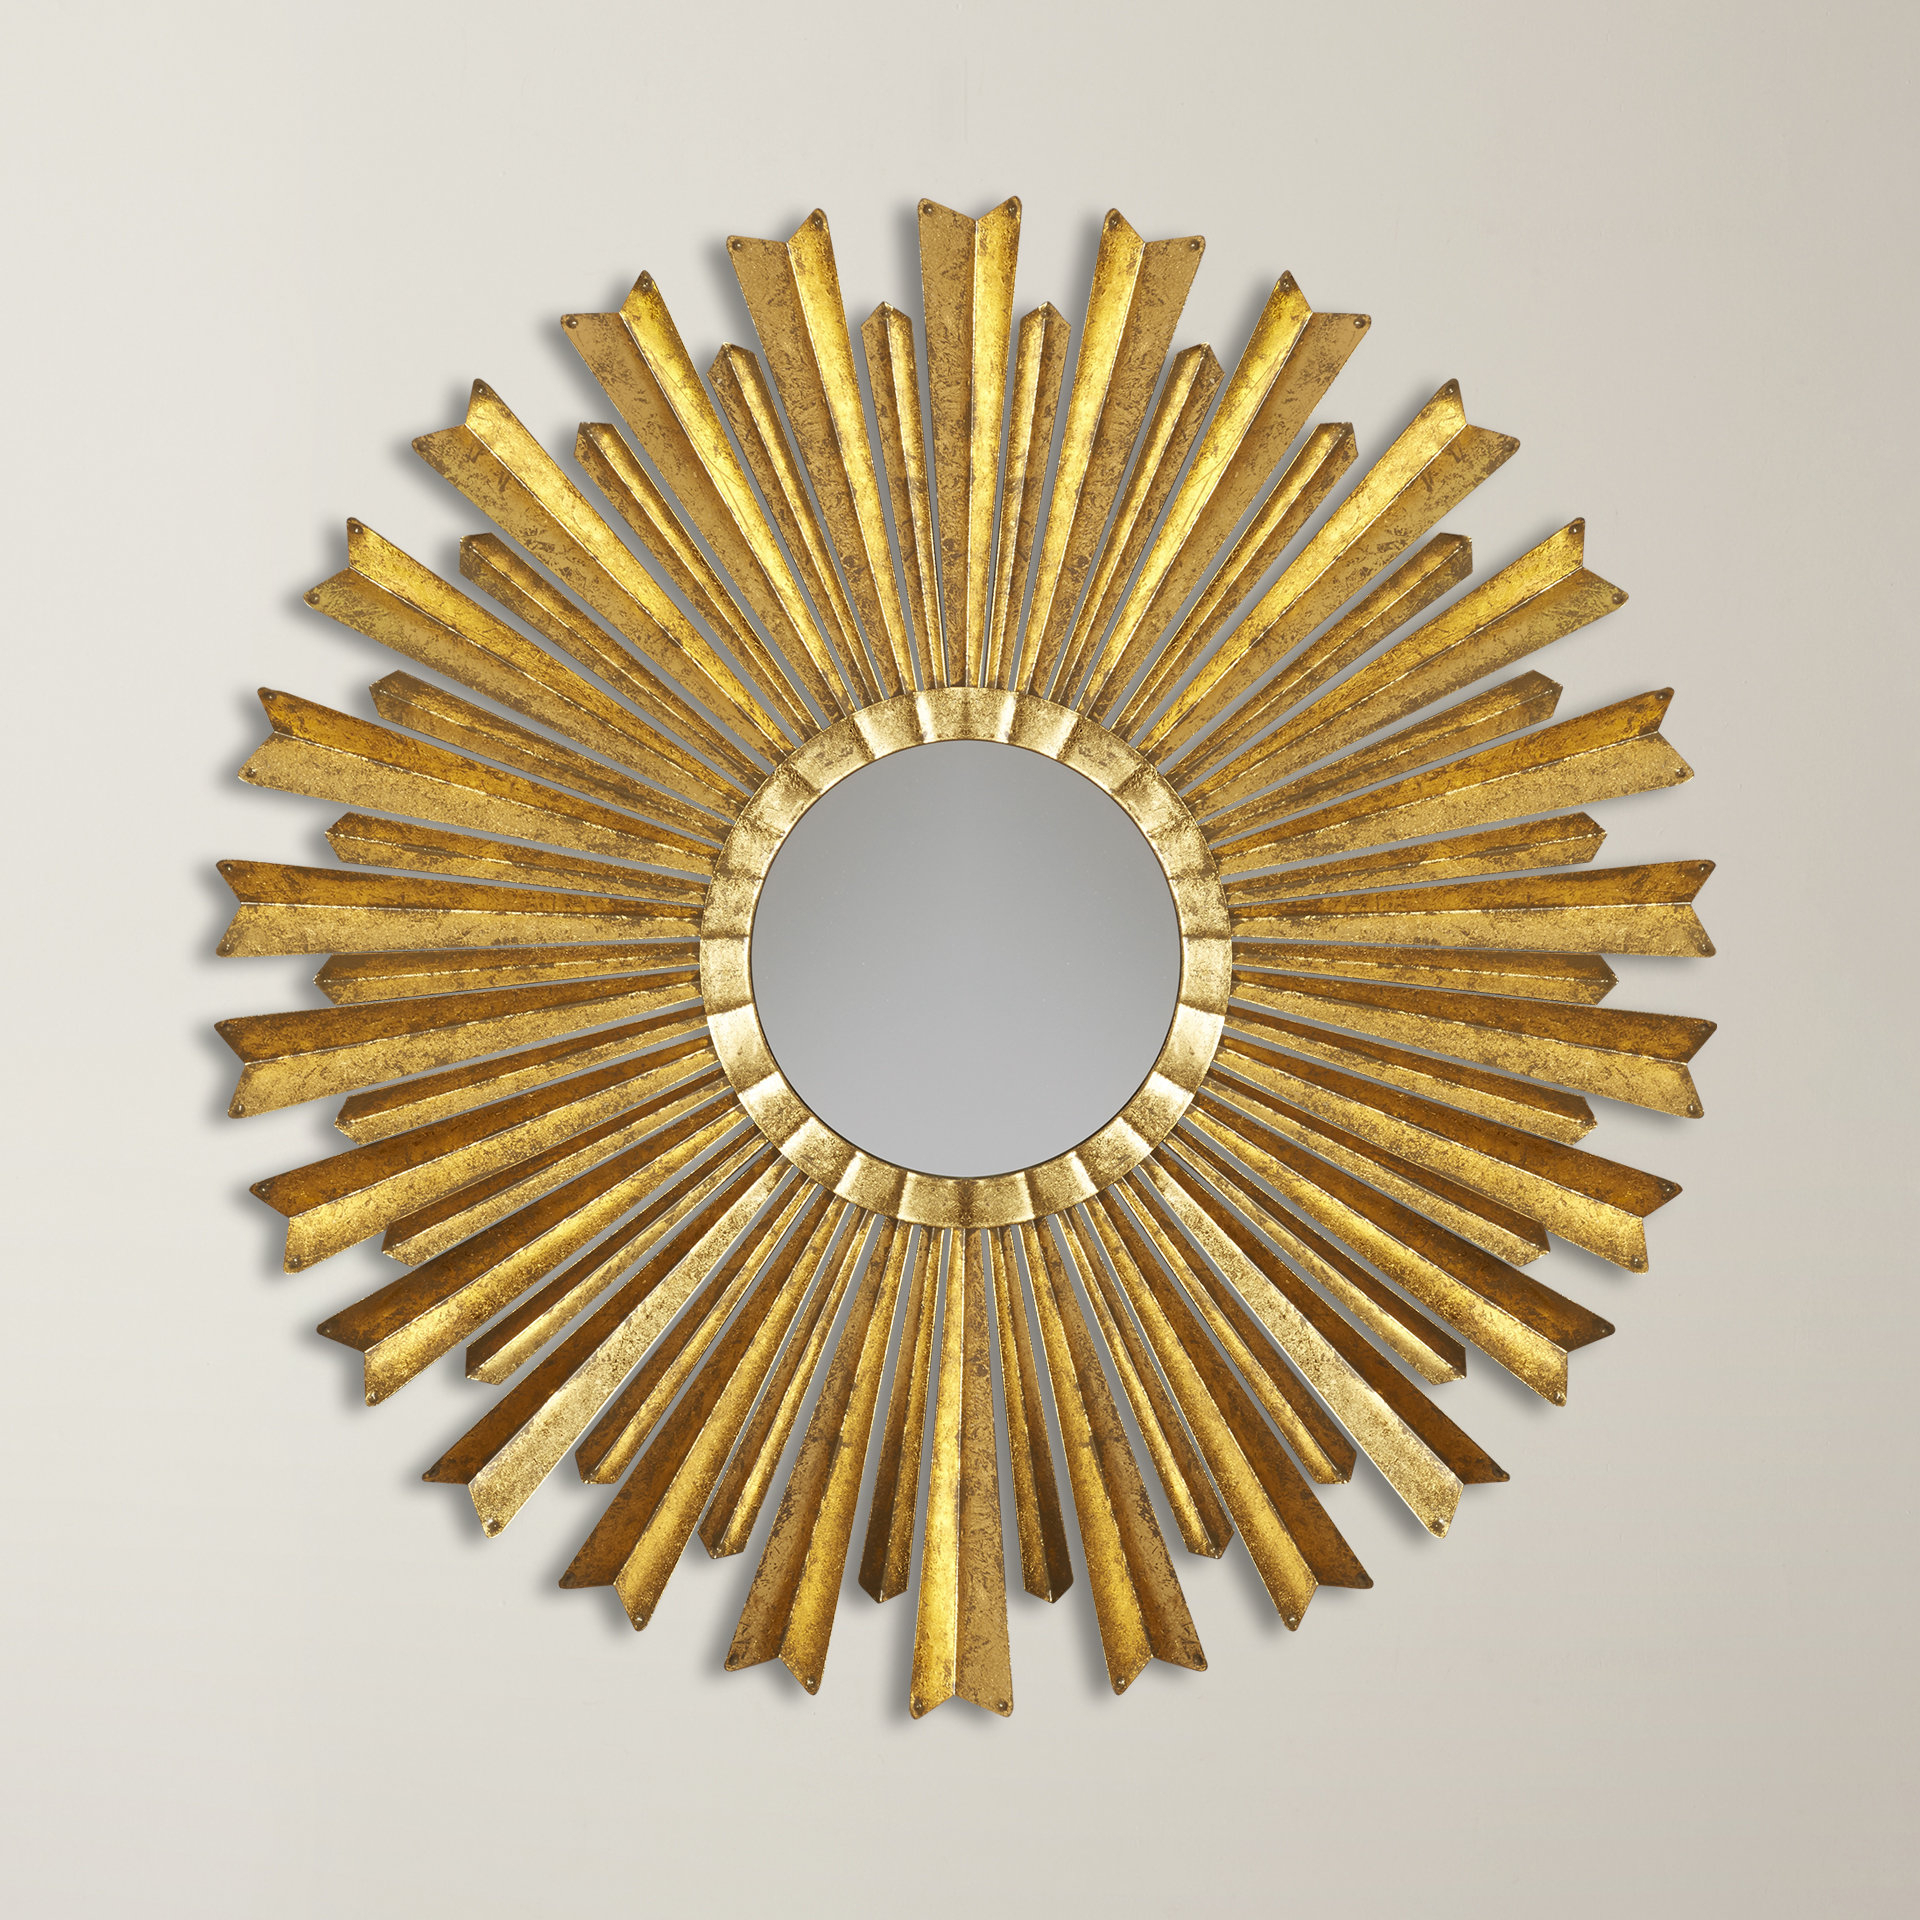 Harbert Modern And Contemporary Distressed Accent Mirrors With Regard To Preferred Birksgate Sunburst Accent Mirror (Gallery 10 of 20)